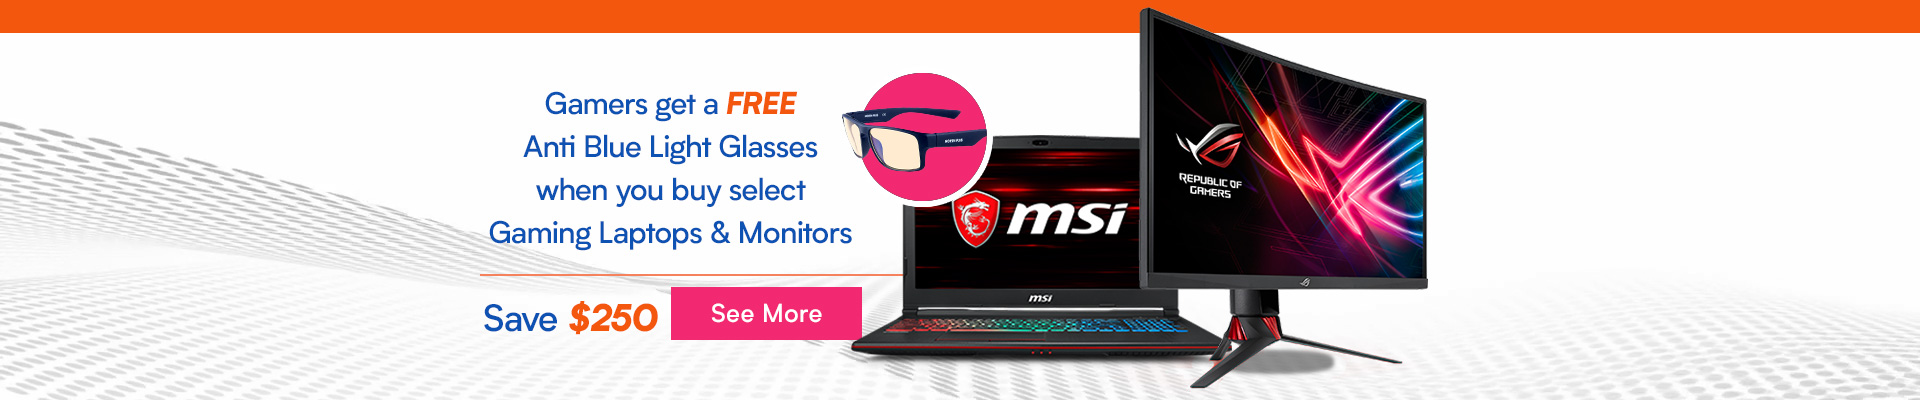 Free Anti Blue Light Glasses for Gamers when you buy select gaming laptops and monitors